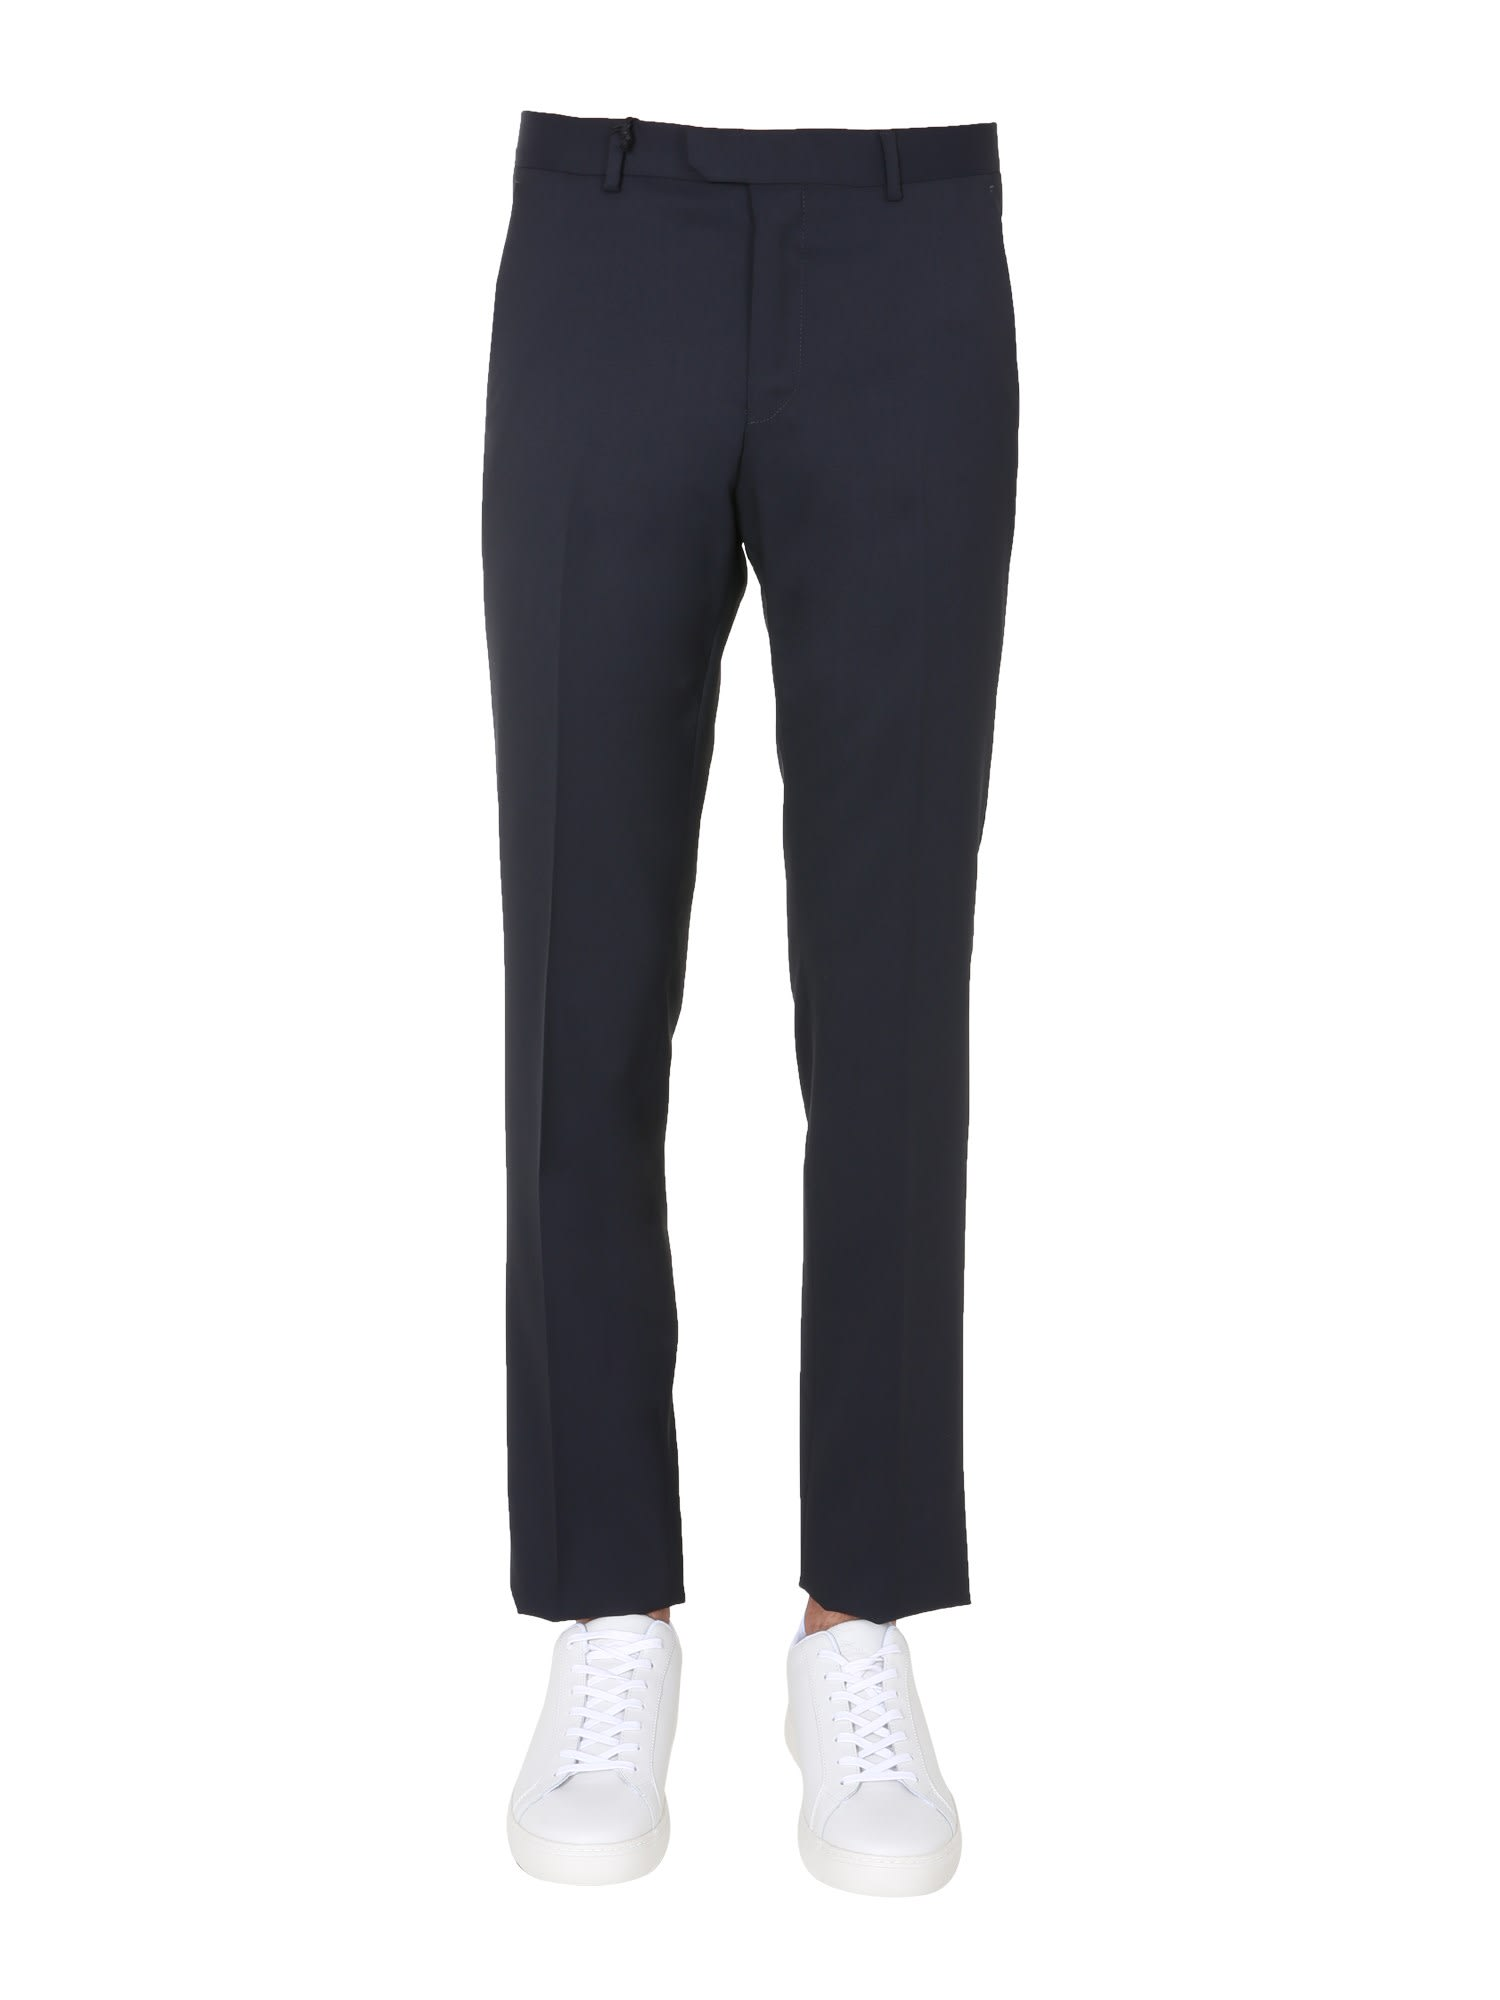 Z Zegna REGULAR FIT TROUSERS